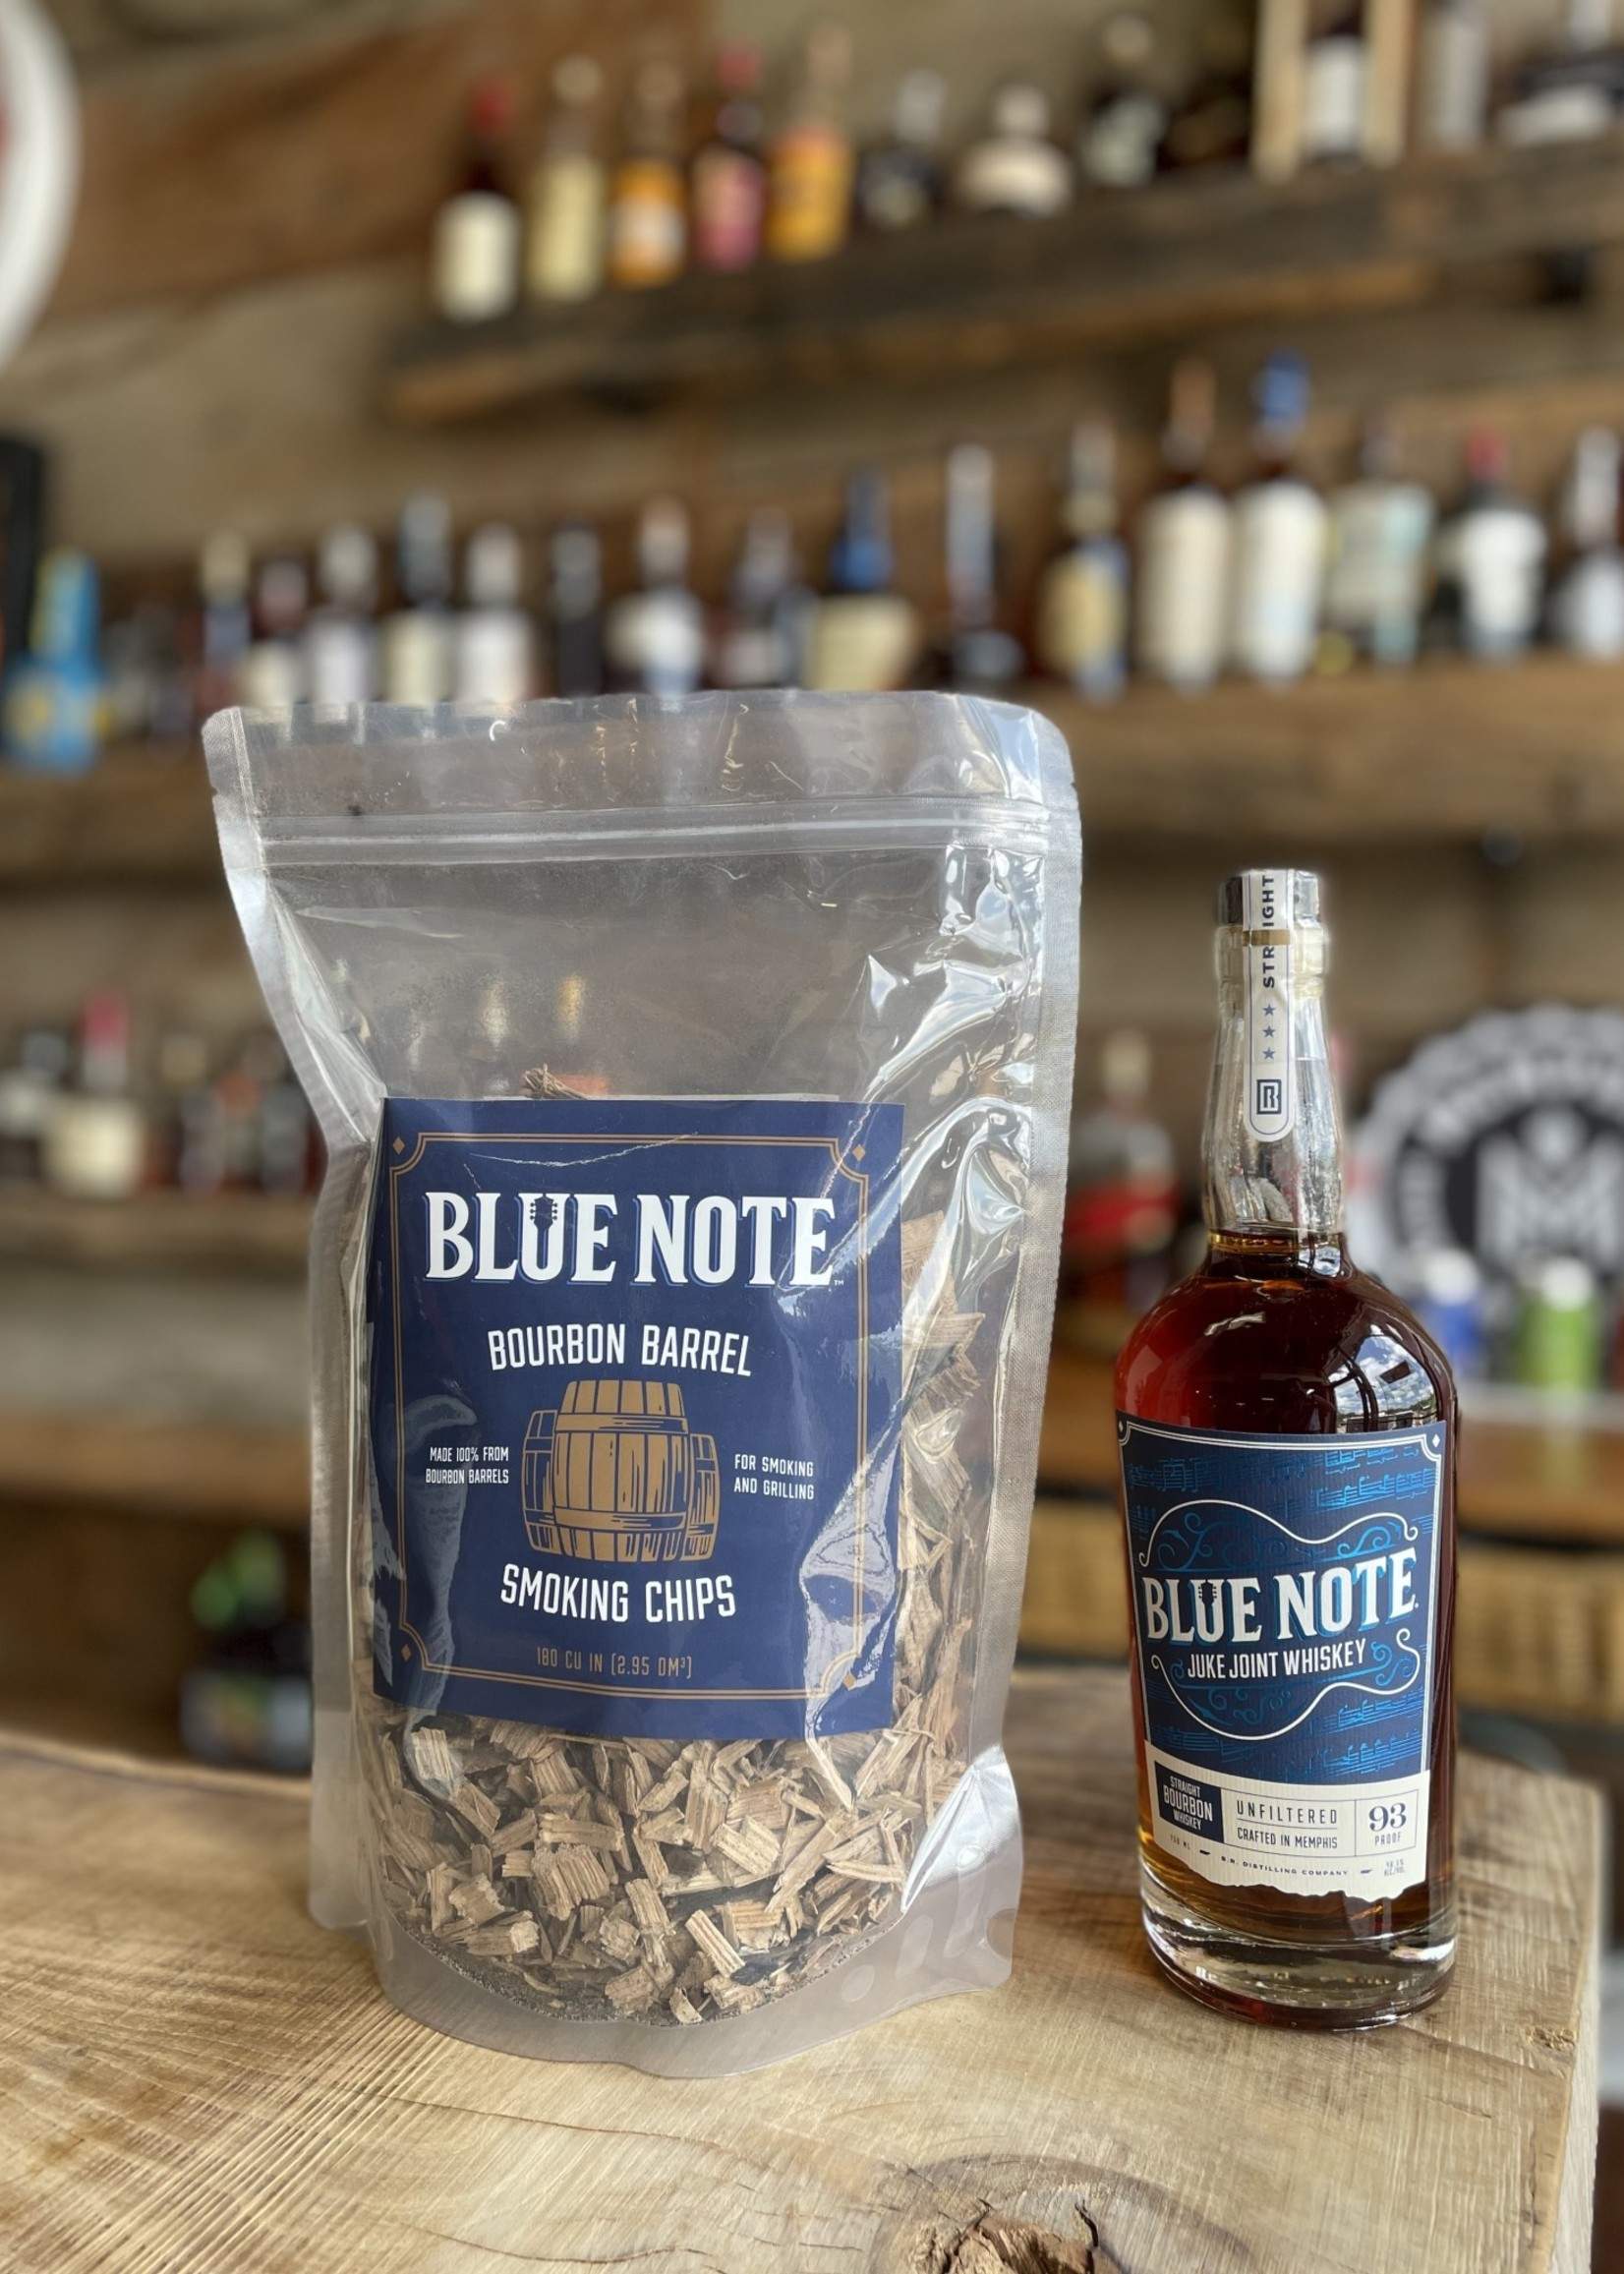 Blue Note Blue Note Smoking Chips